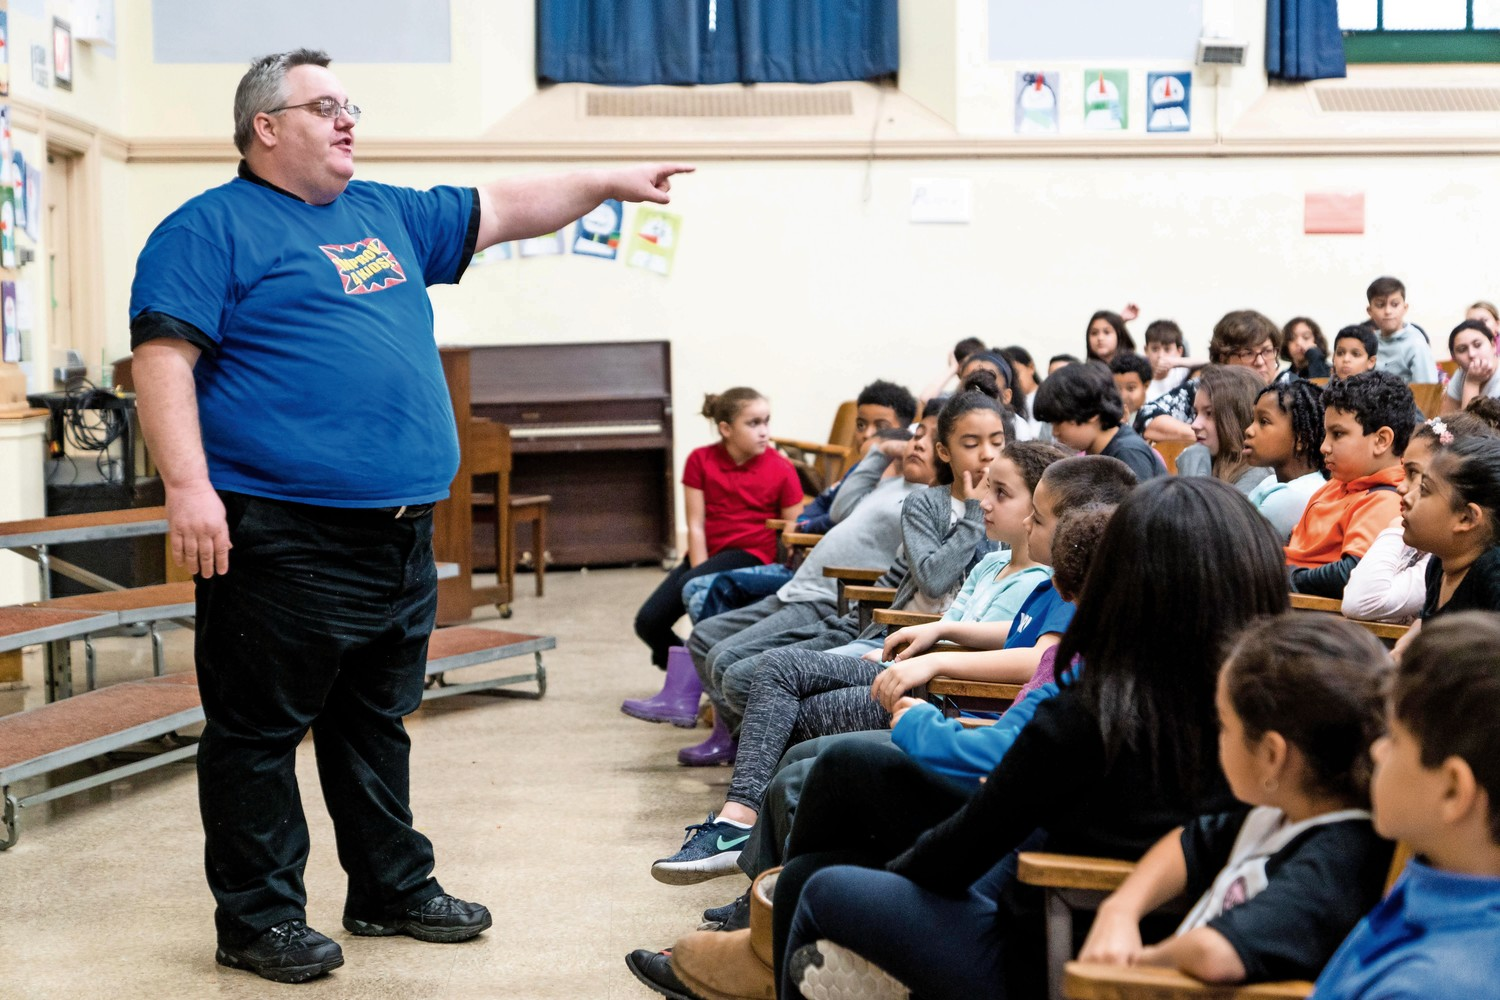 Will Frasier, a founding member of the improv troupe 'Eight is Never Enough,' explains the fundamentals of improvisational comedy to students at P.S. 24.